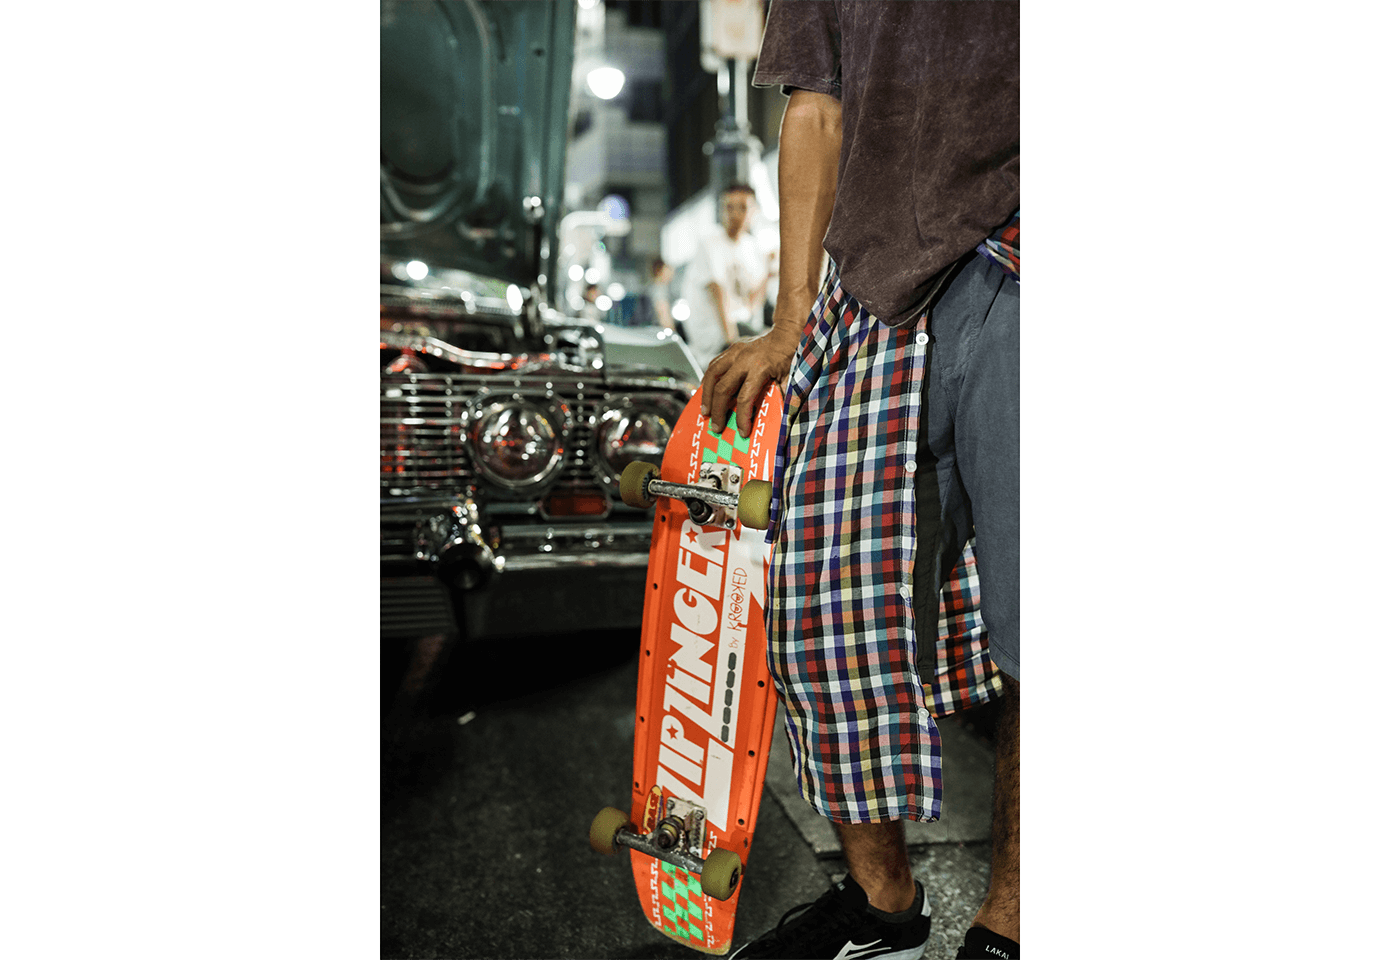 Photograph of man holding skateboard taken using RF 28-70mm f/2L USM